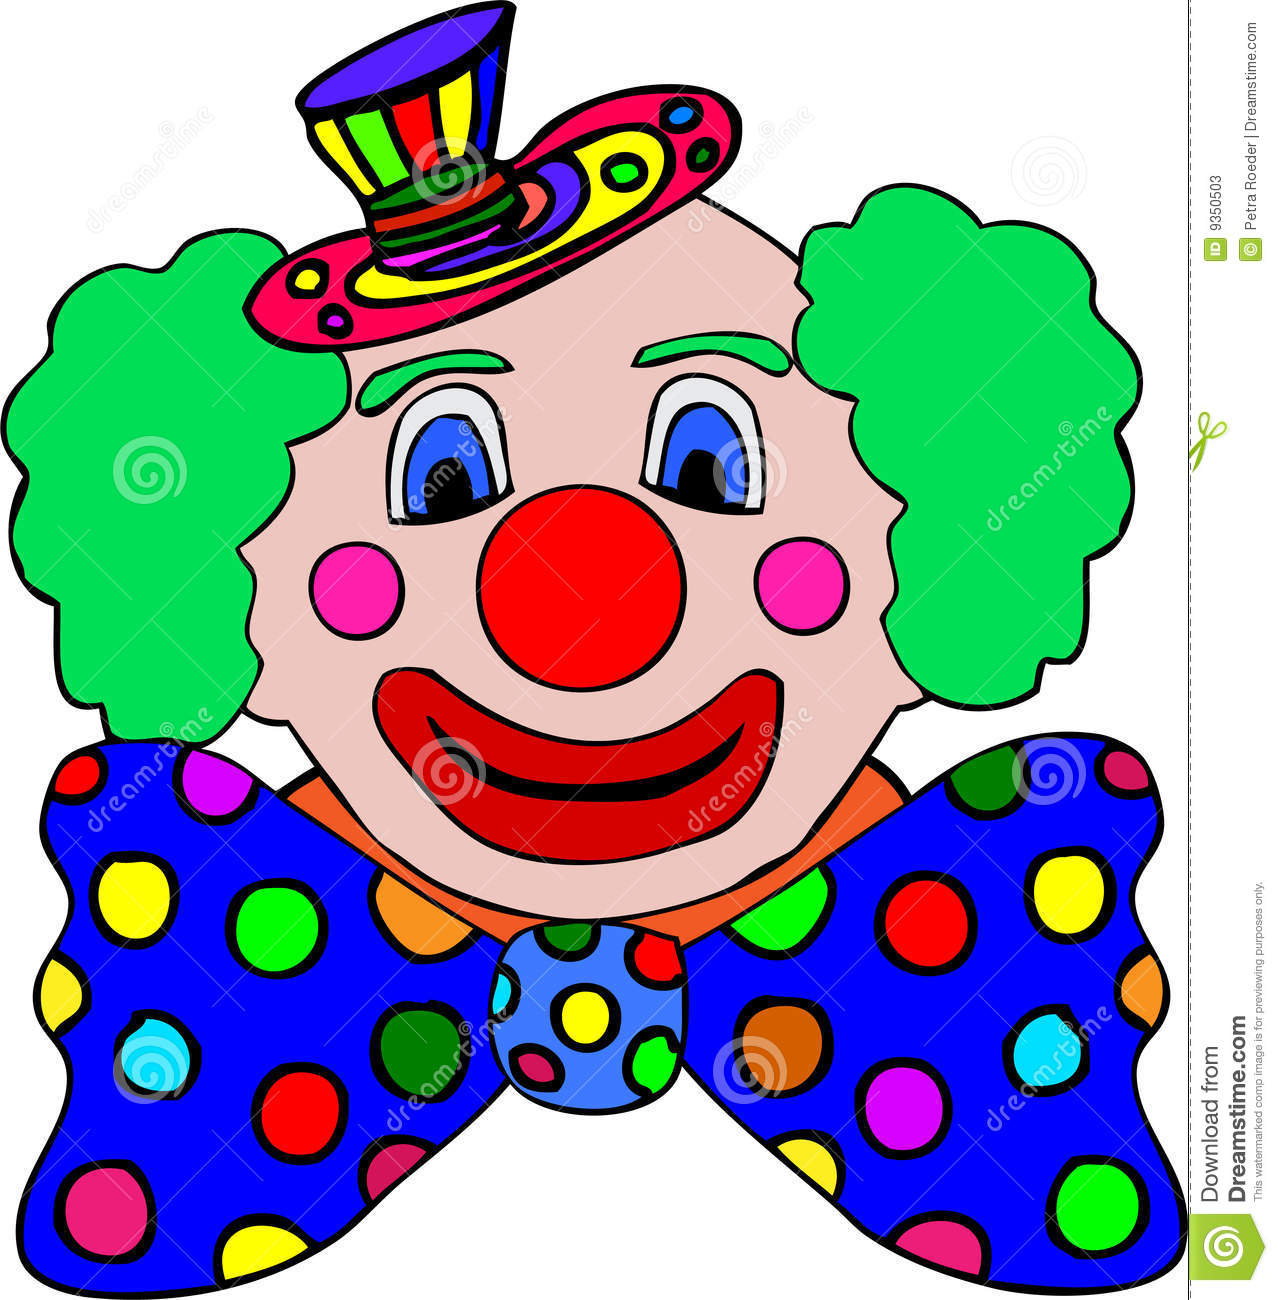 Illustration Of Colorful Clown With Large Spotted Bow Tie Isolated